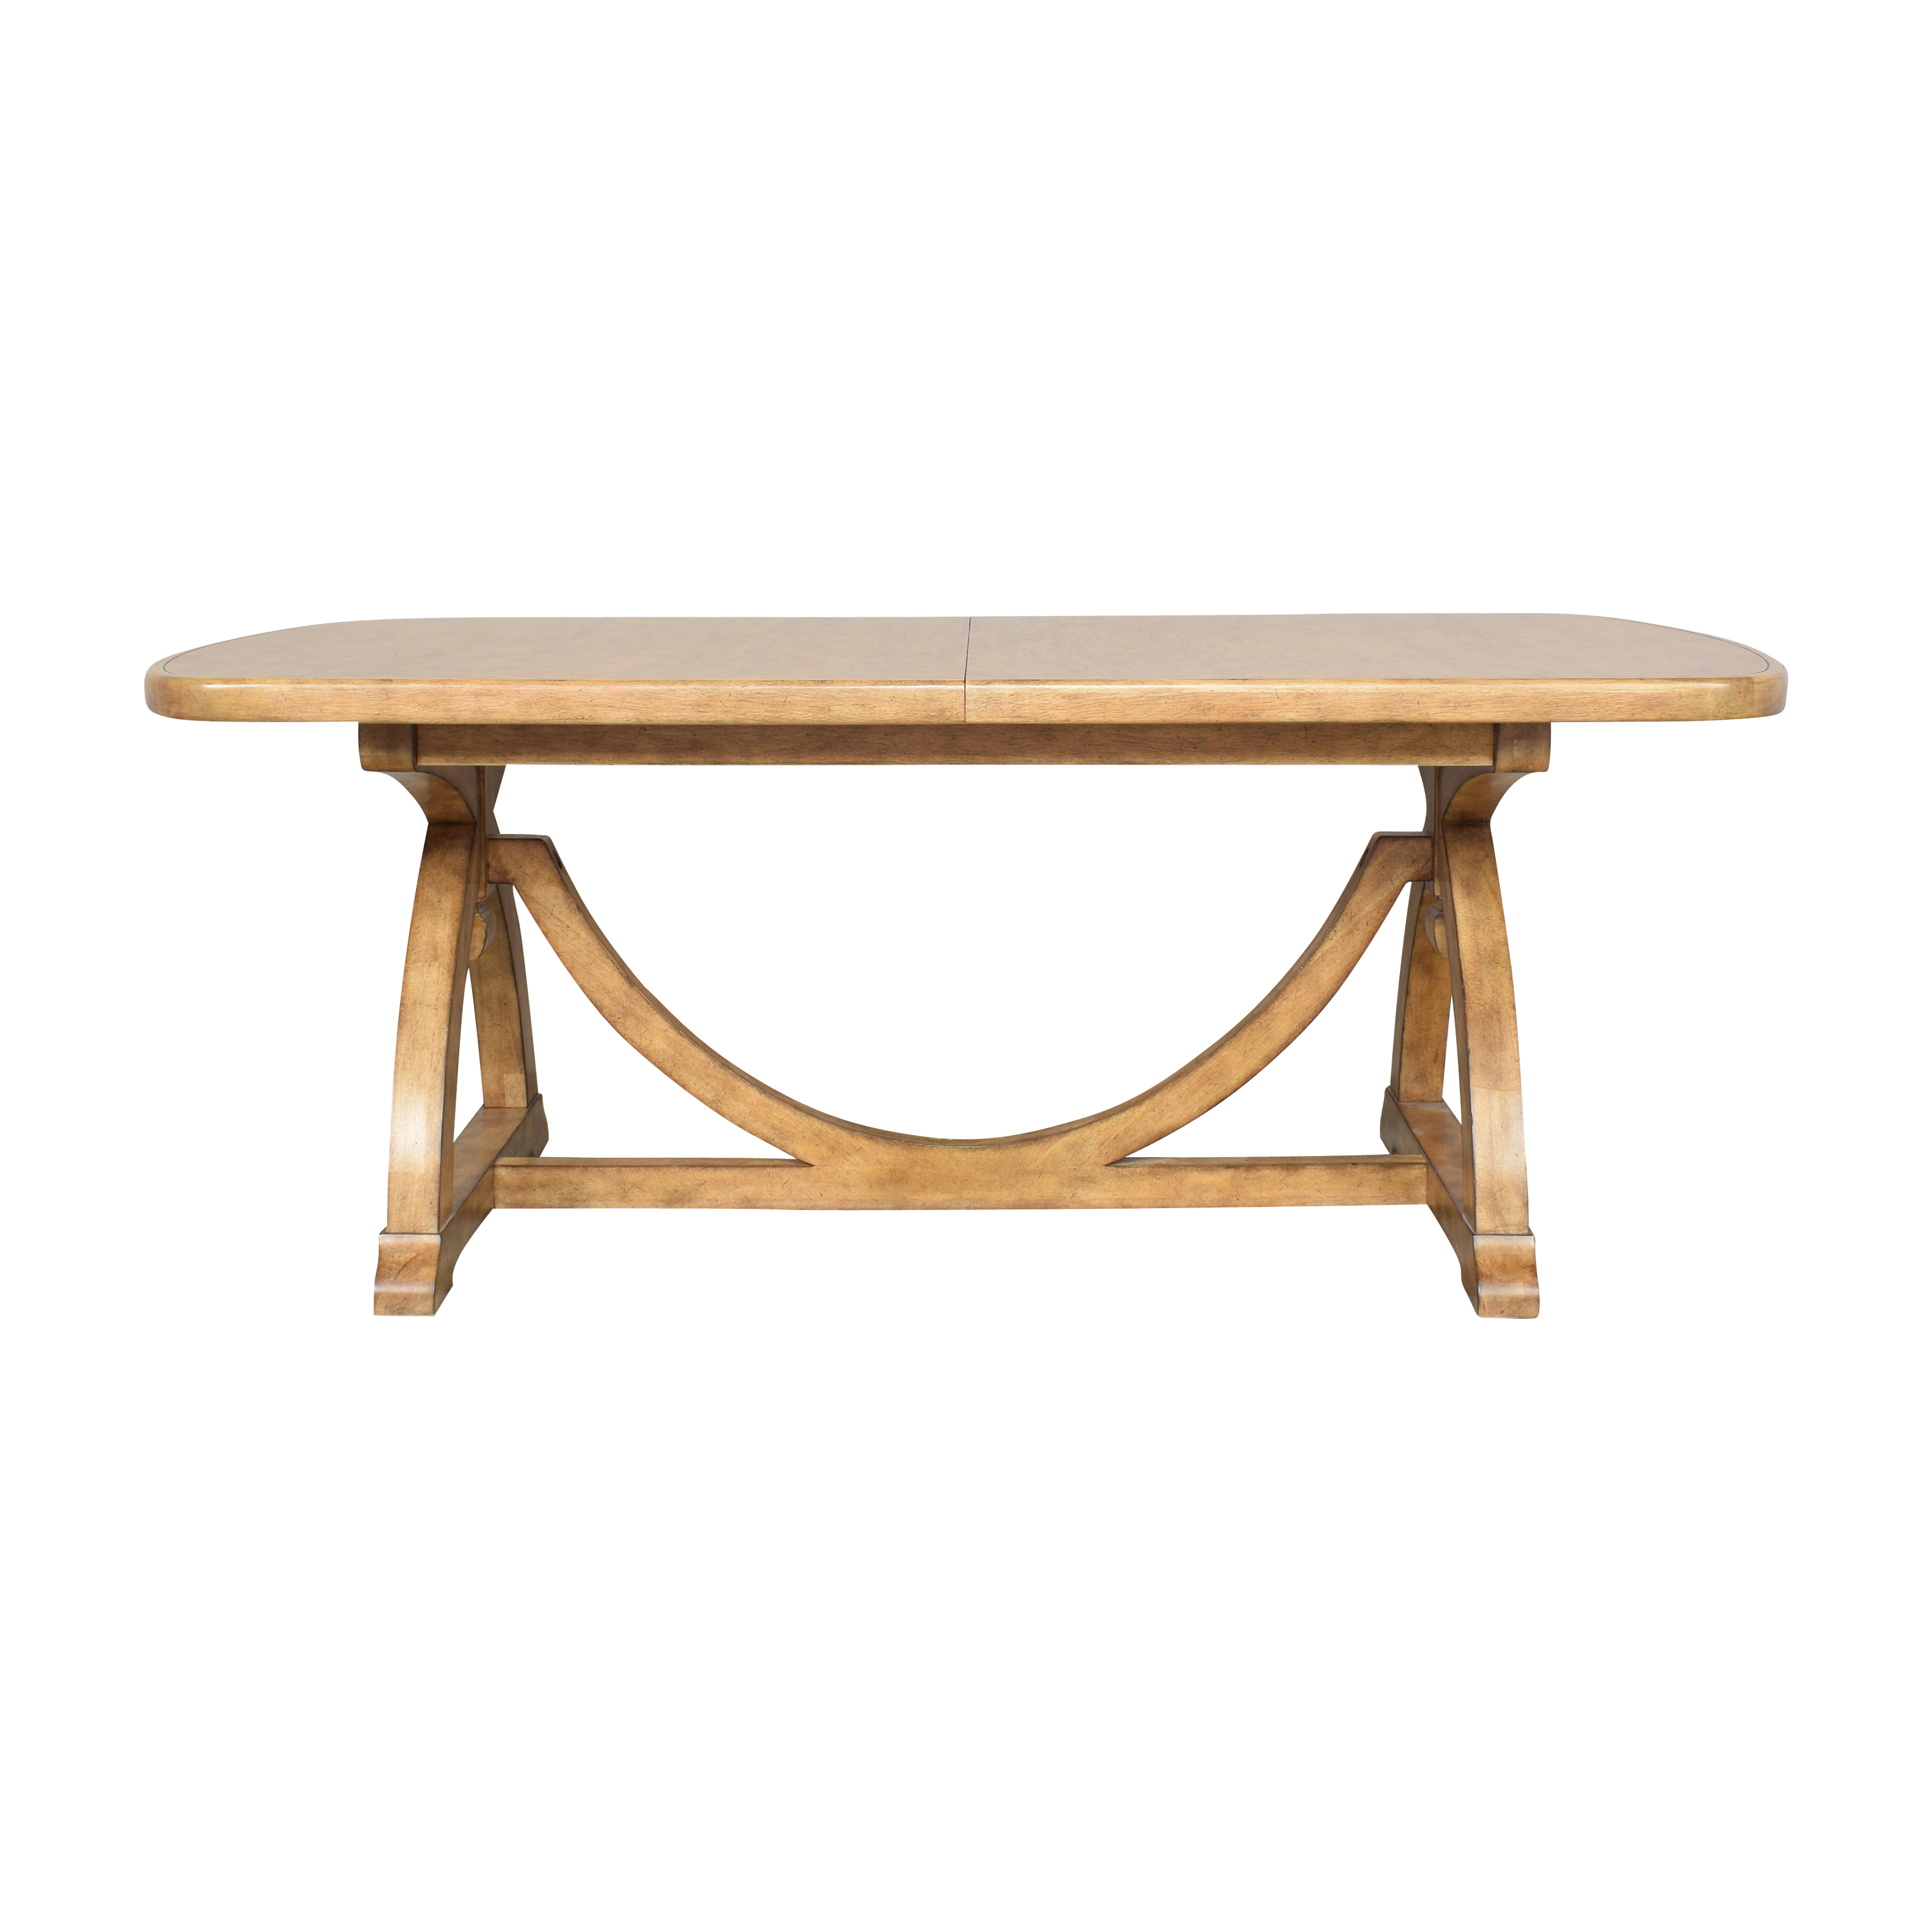 Thomasville Thomasville Reinventions Pacific Trestle Dining Table on sale